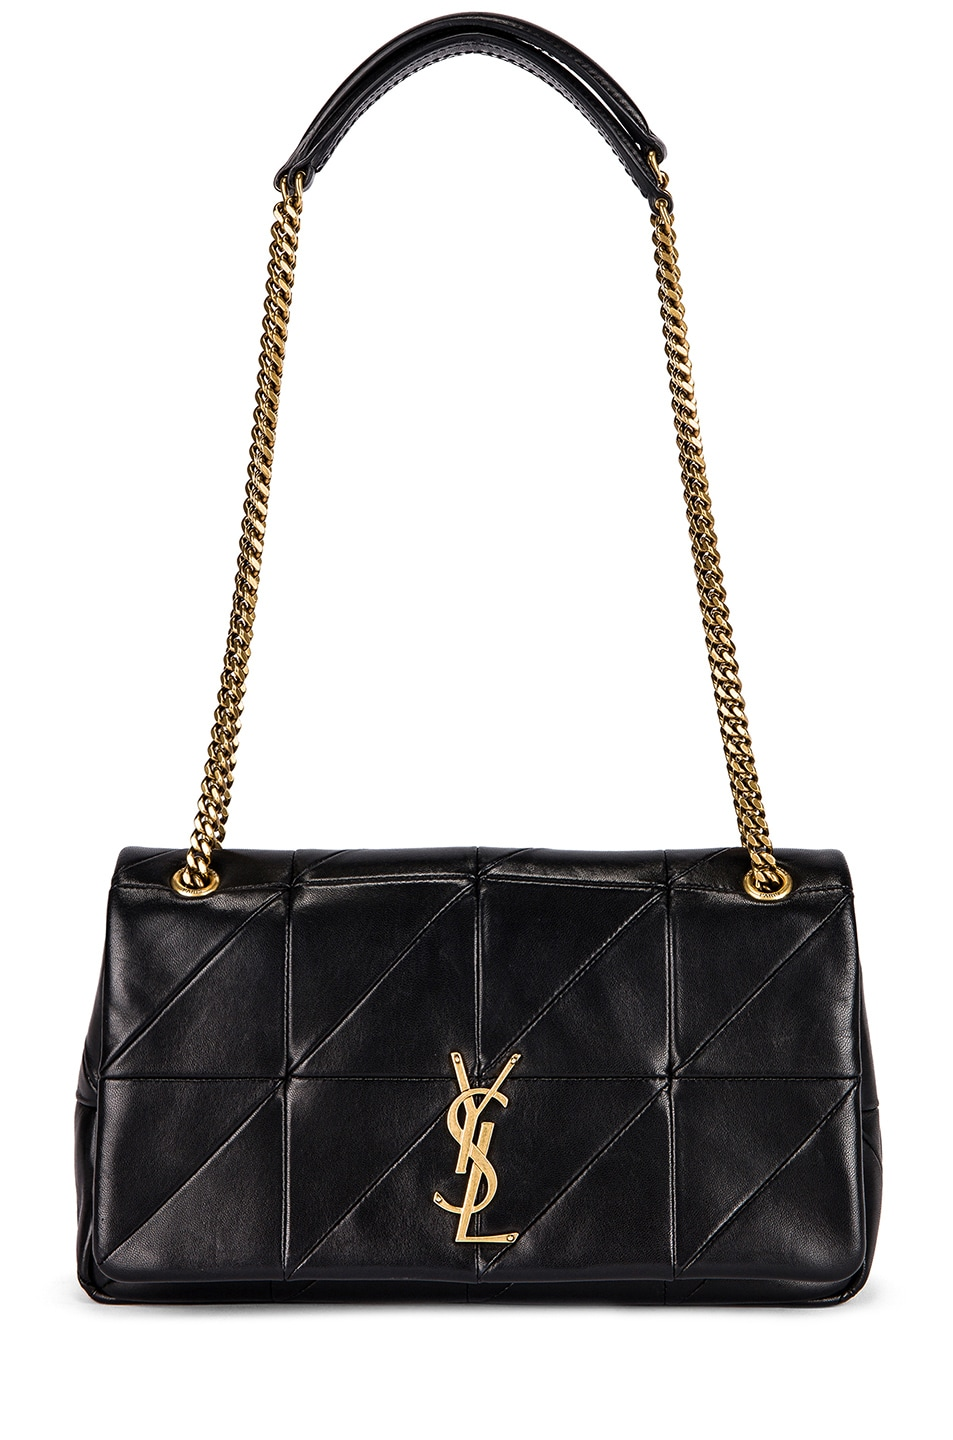 Jamie Monogram Ysl Small Diamond-Quilted Chain Shoulder Bag in Black